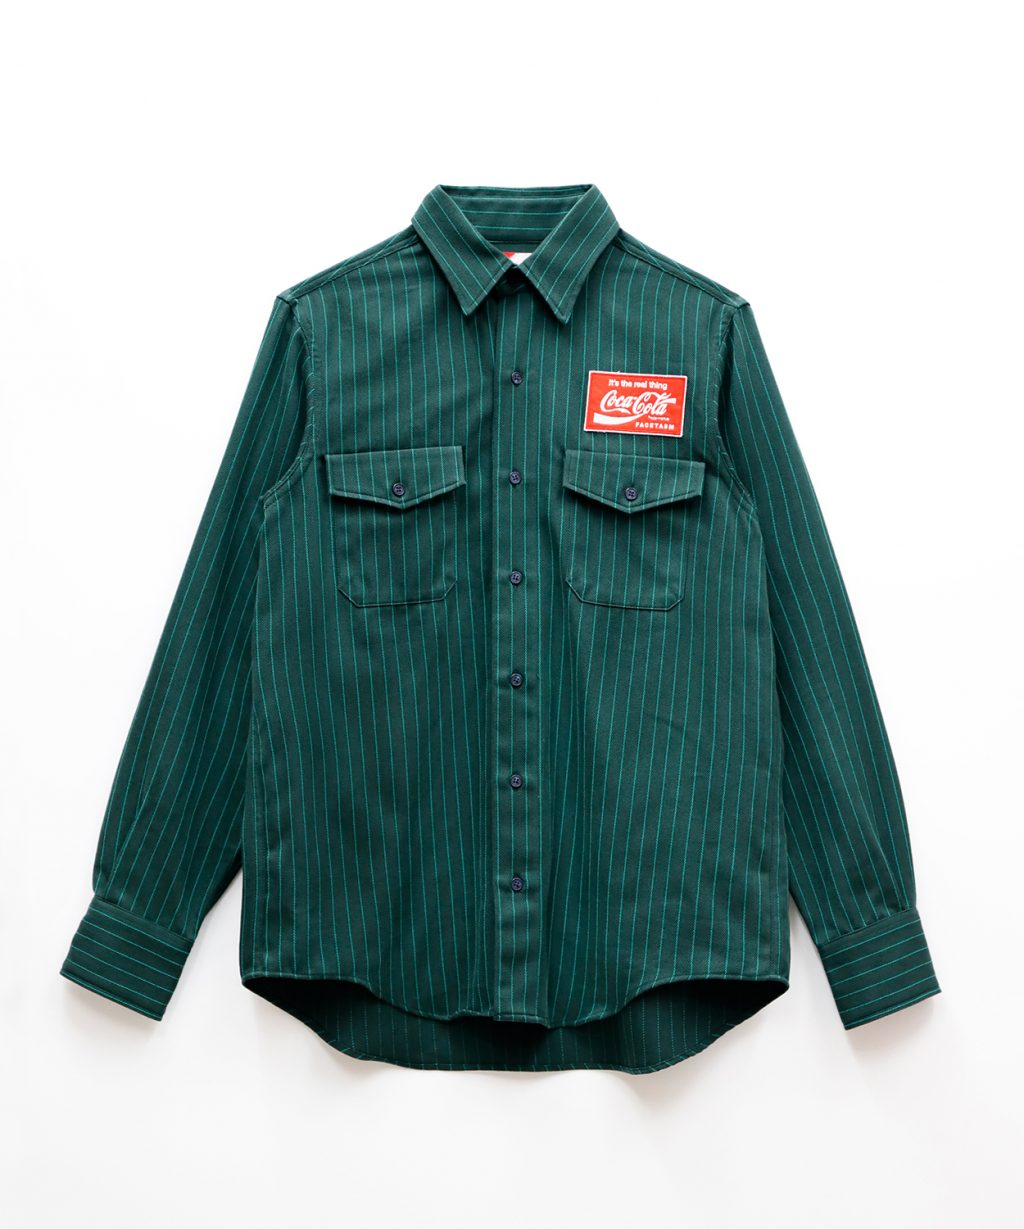 COCA-COLA-STRIPE-SHIRT-green1-1024x1229.jpg